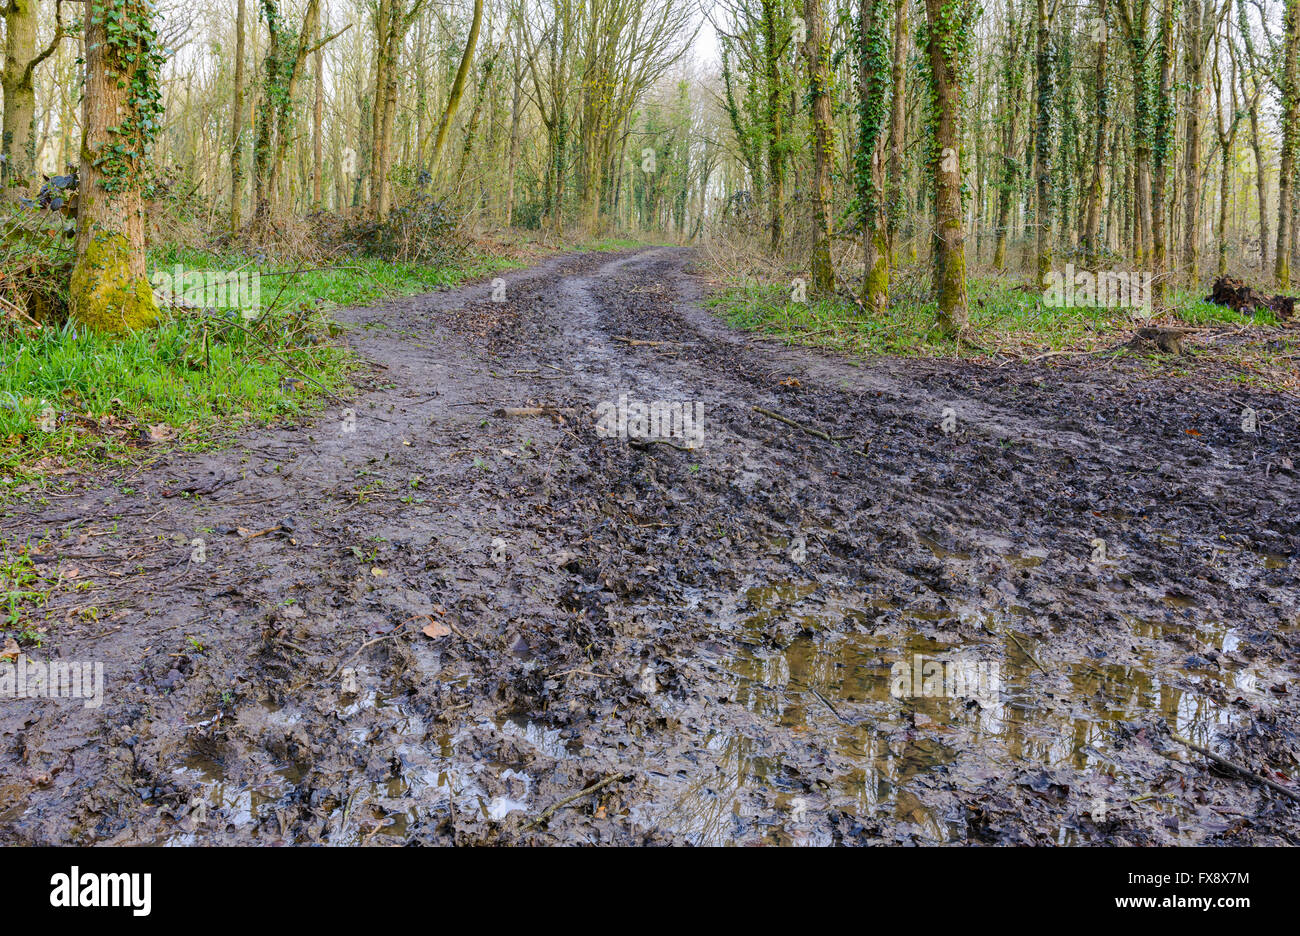 Muddy road with trees in the woods either side, after rainfall. - Stock Image